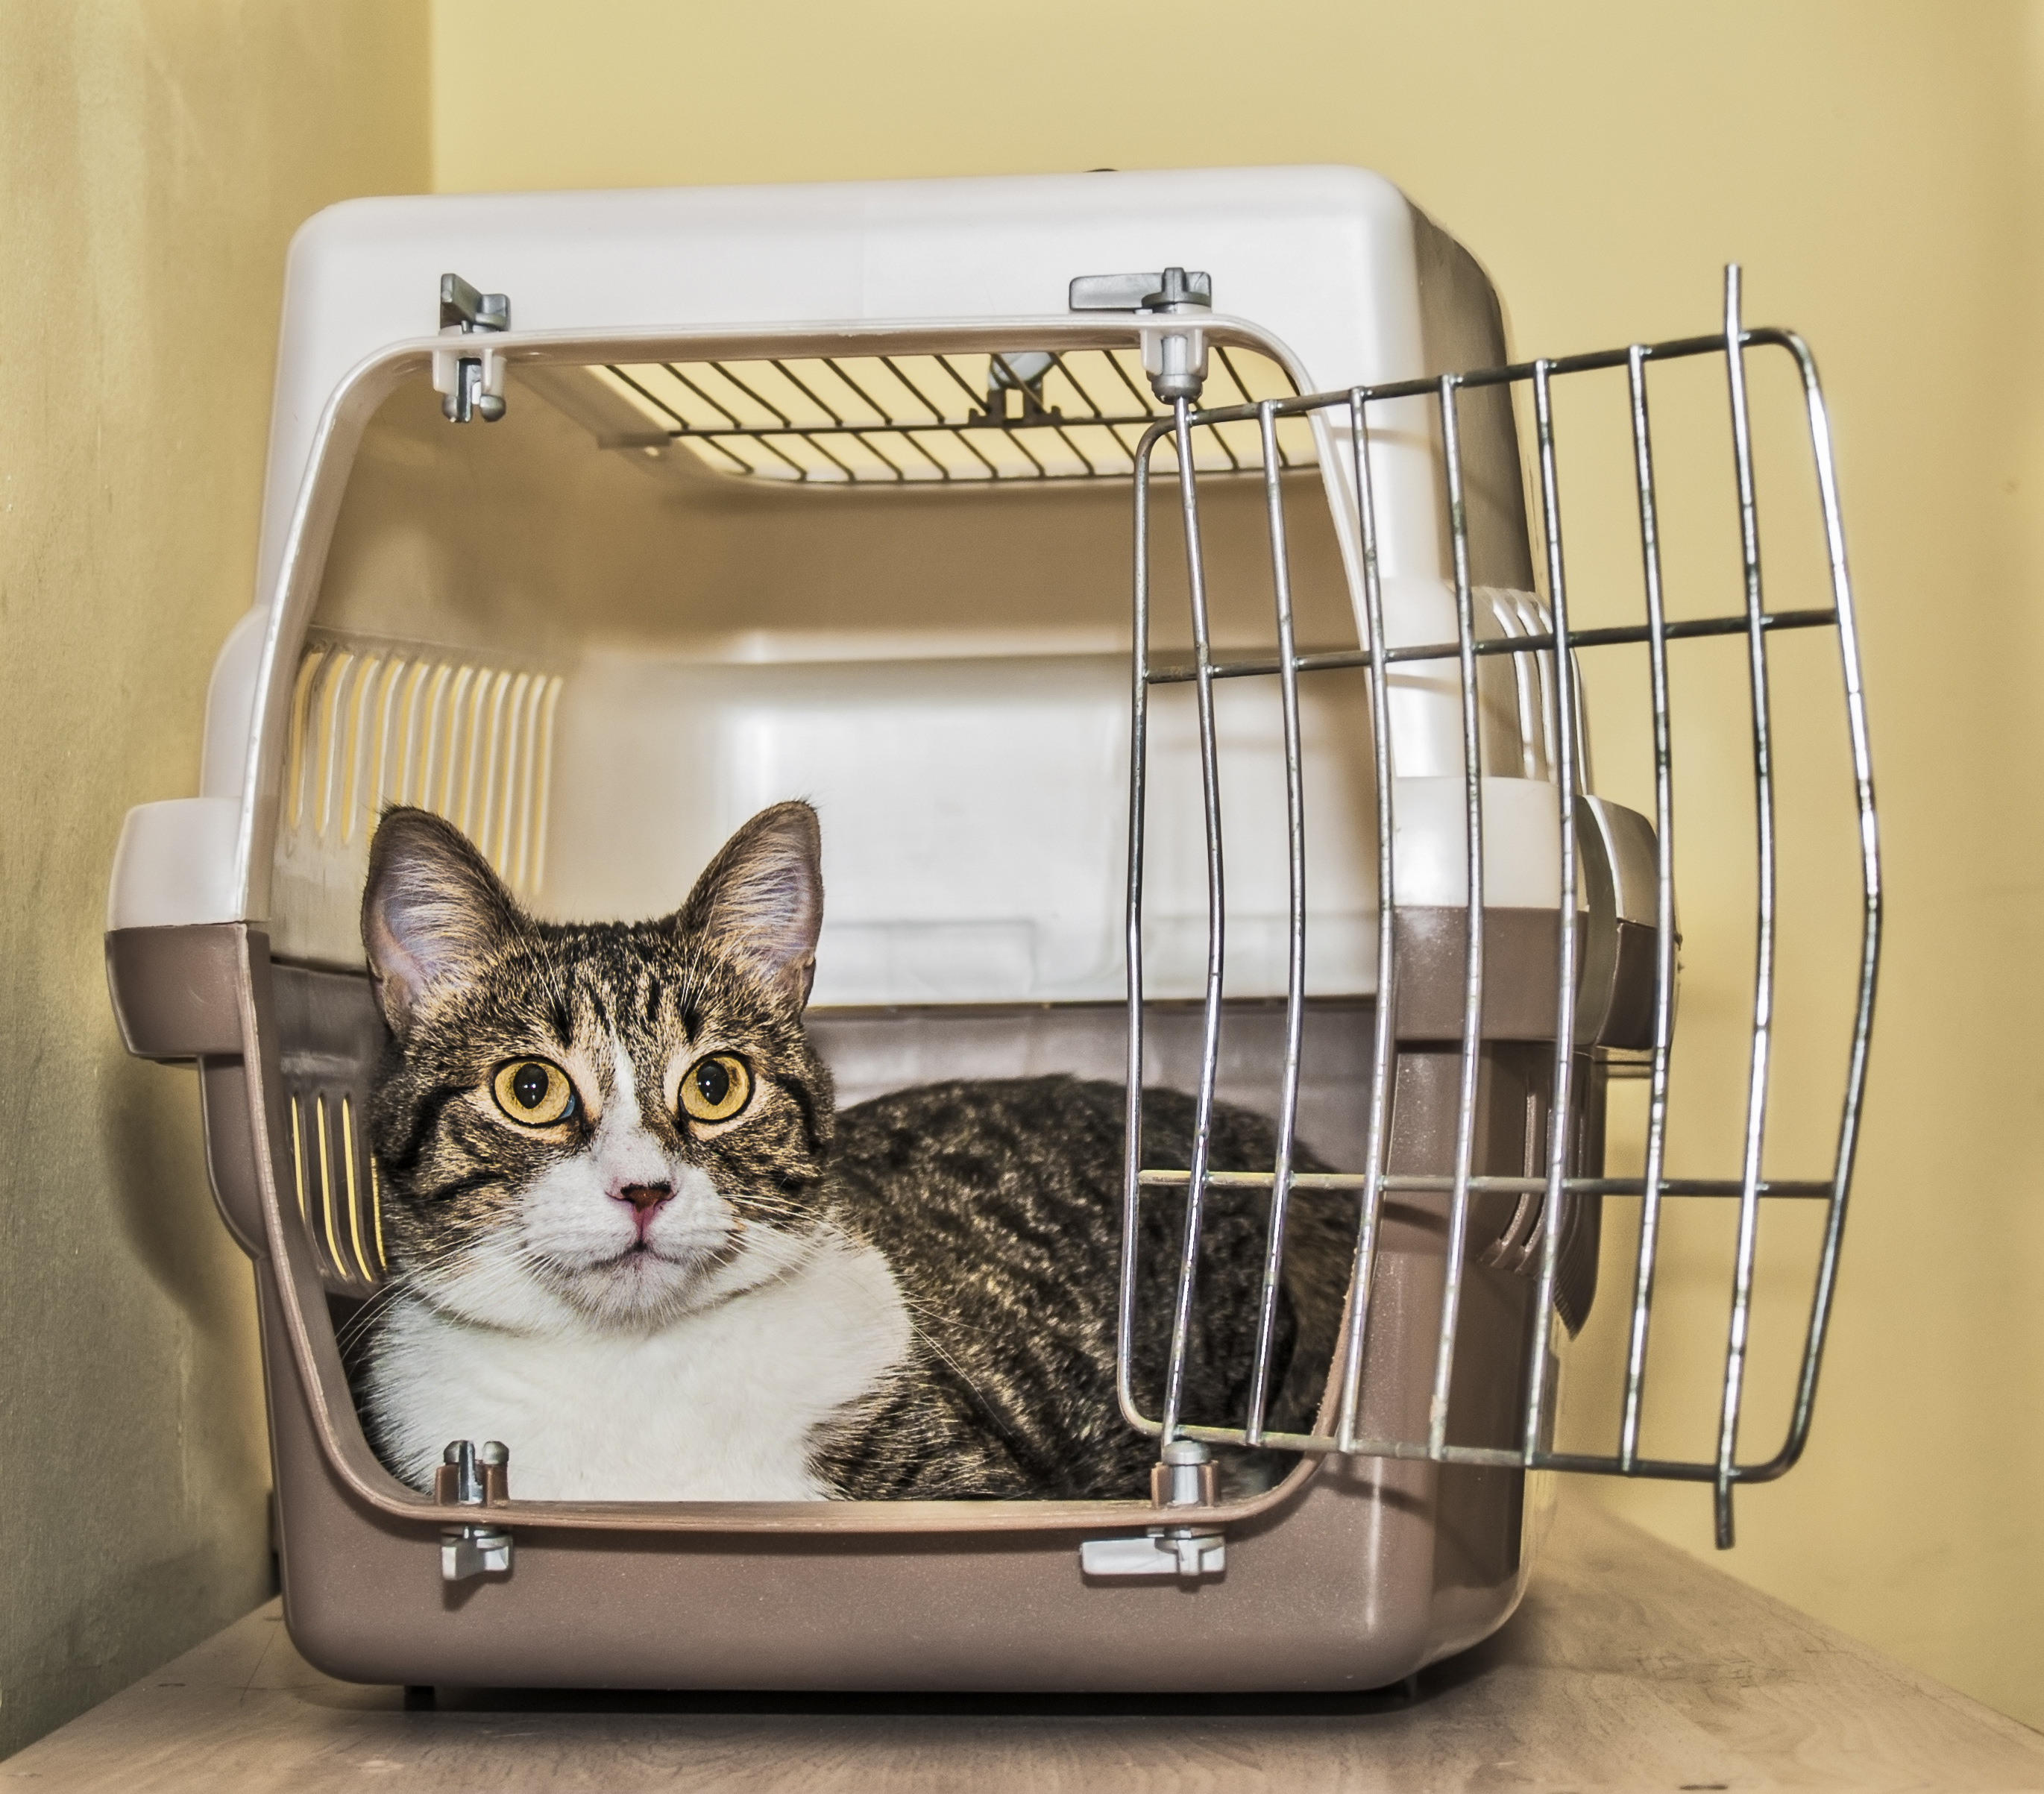 Pet travel crates, carriers tested for 'crashworthiness'